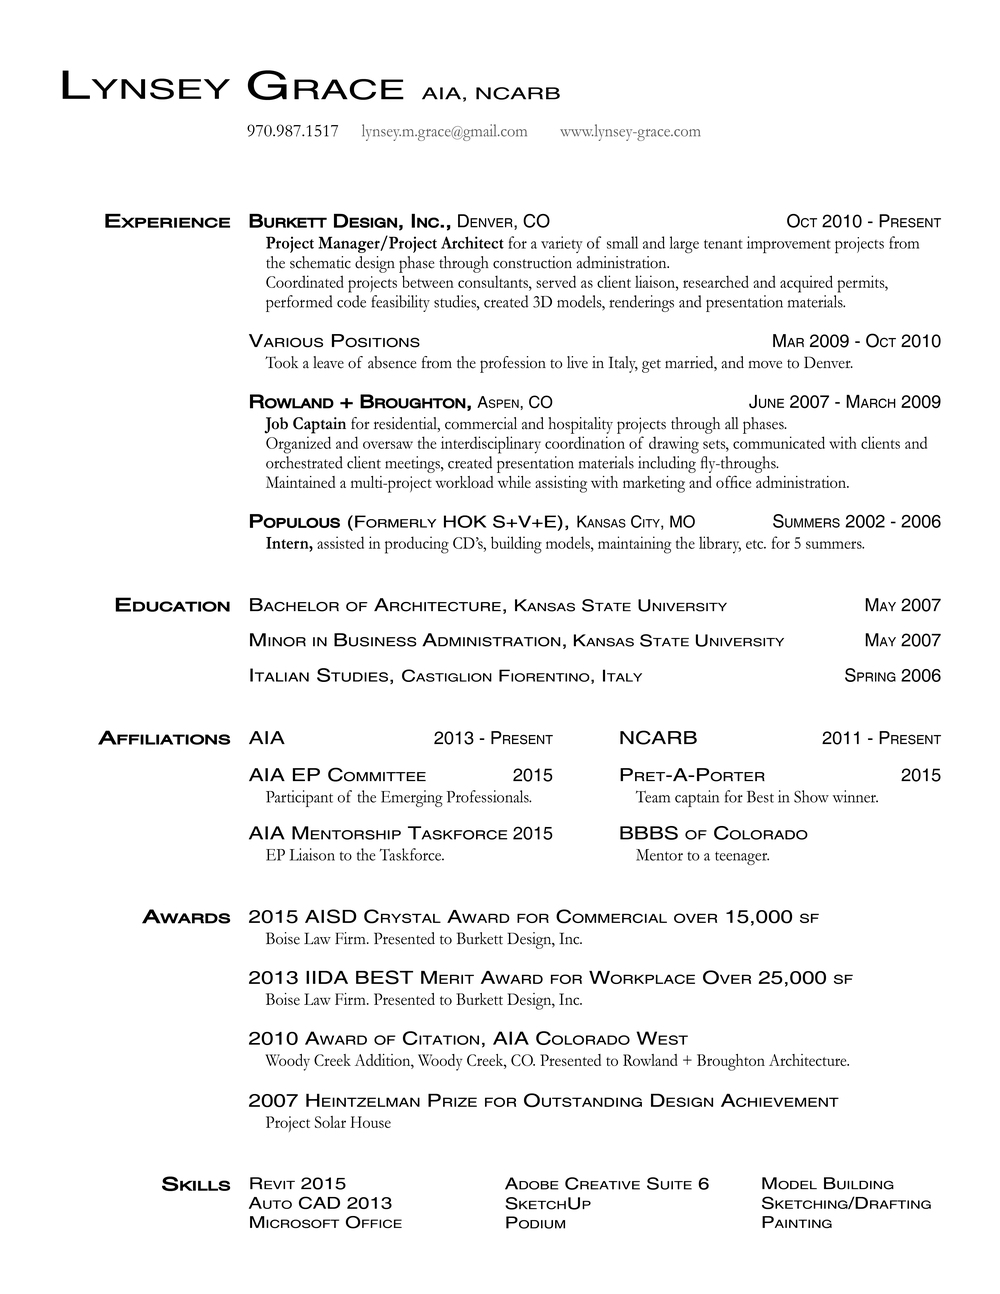 Resume Resume References Upon Request resume upon request references available who is mrs k